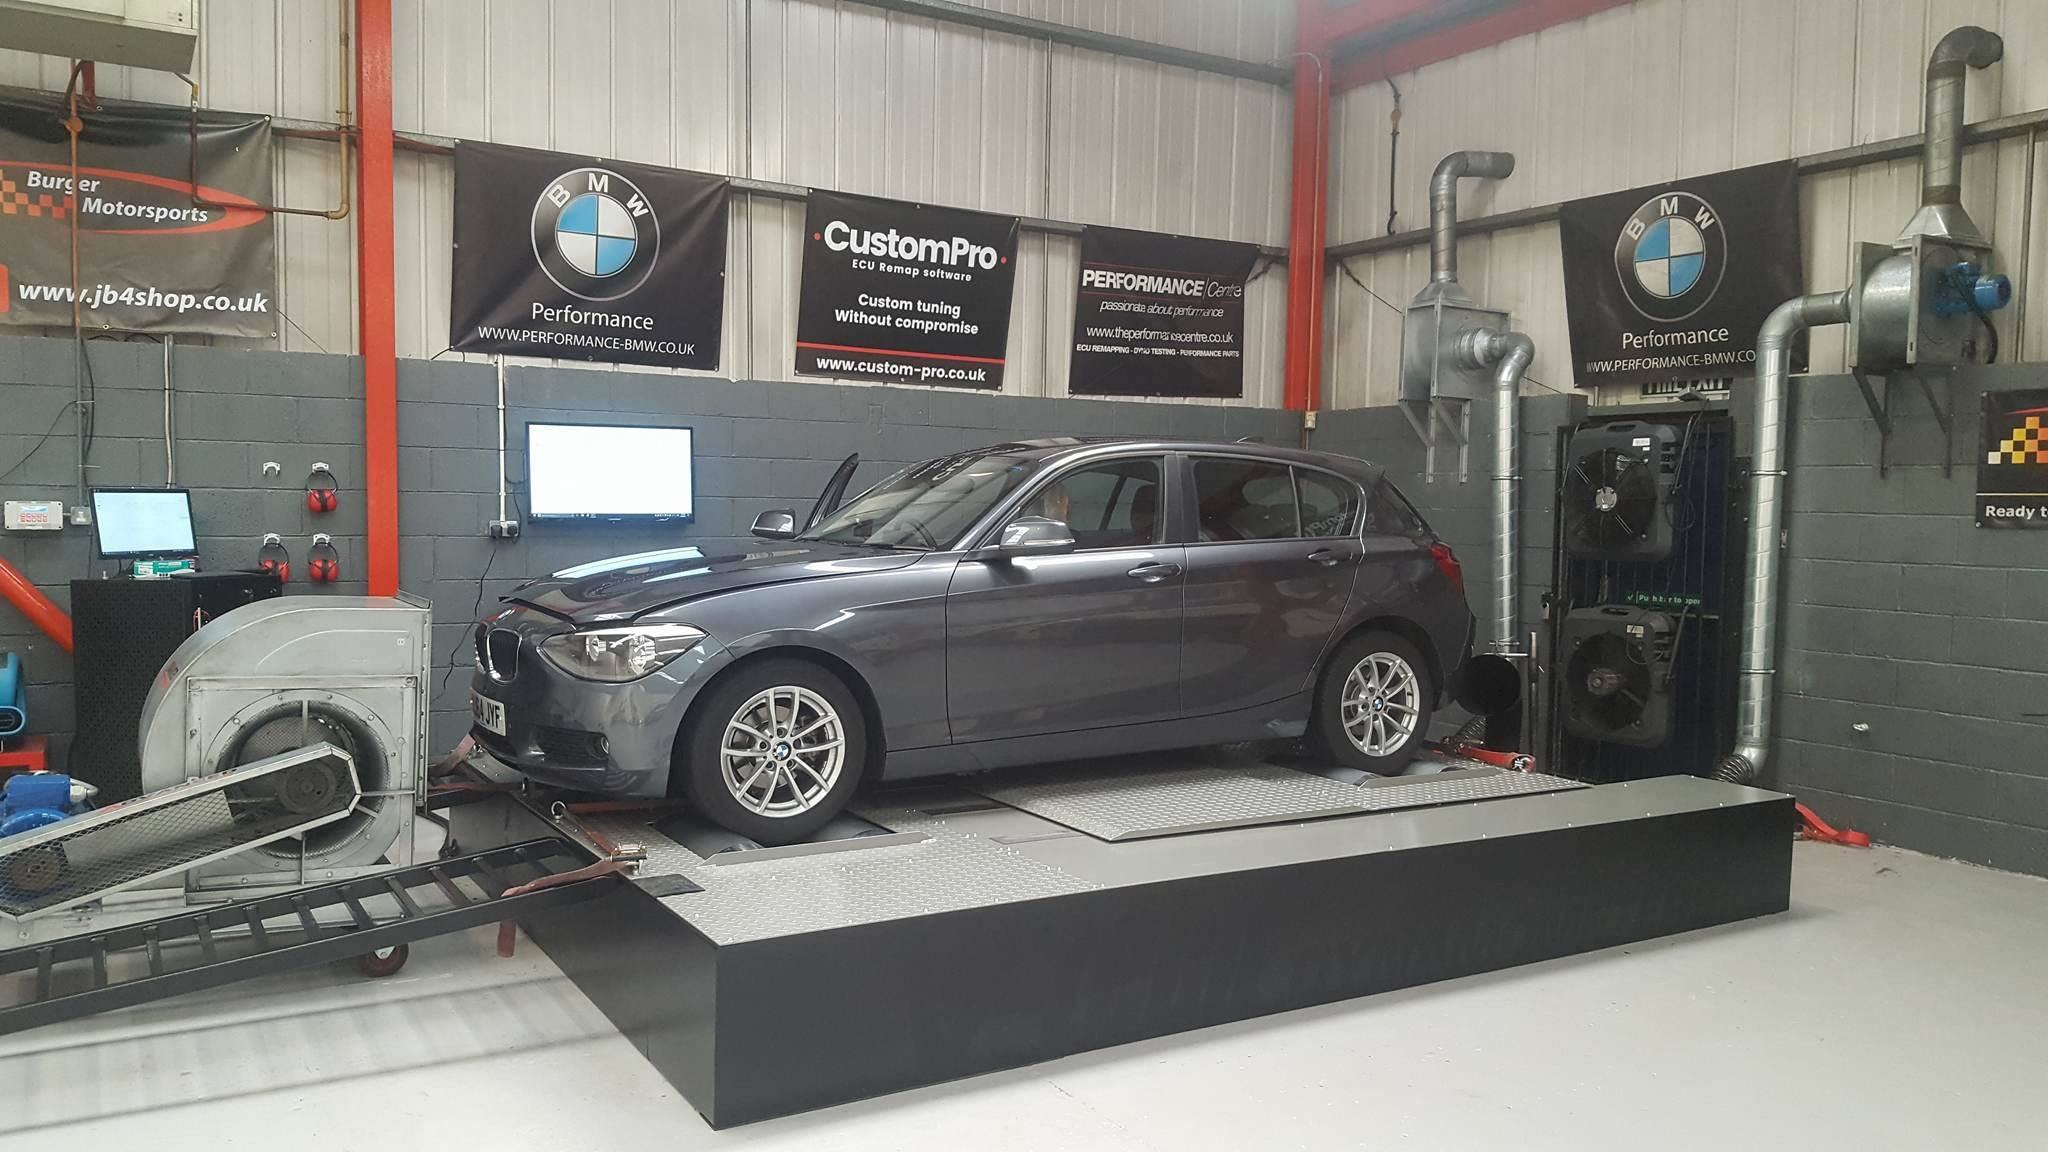 BMW F series 118d - CustomPro remap